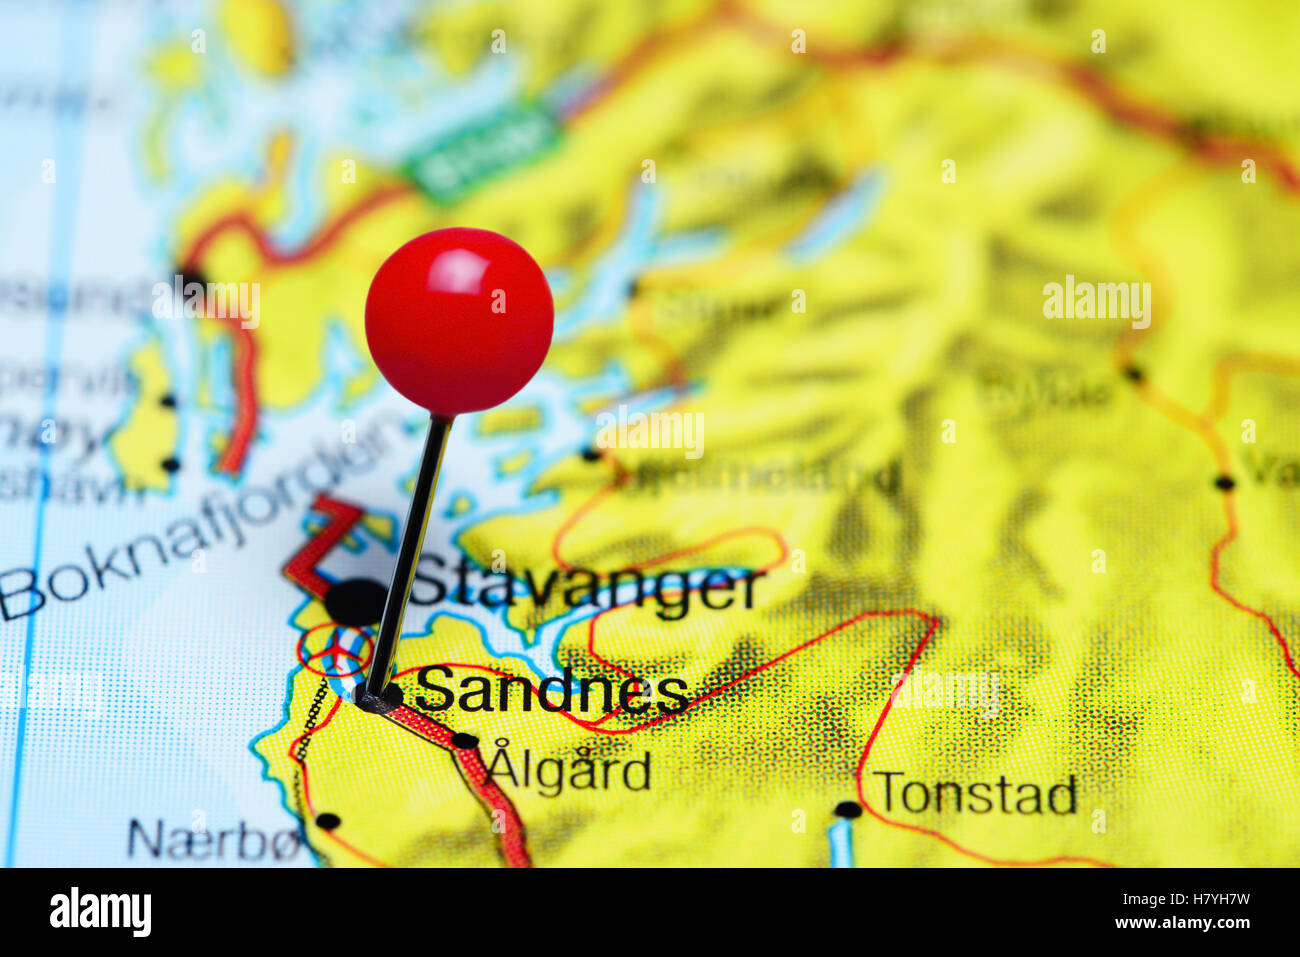 Sandnes pinned on a map of Norway Stock Photo Royalty Free Image